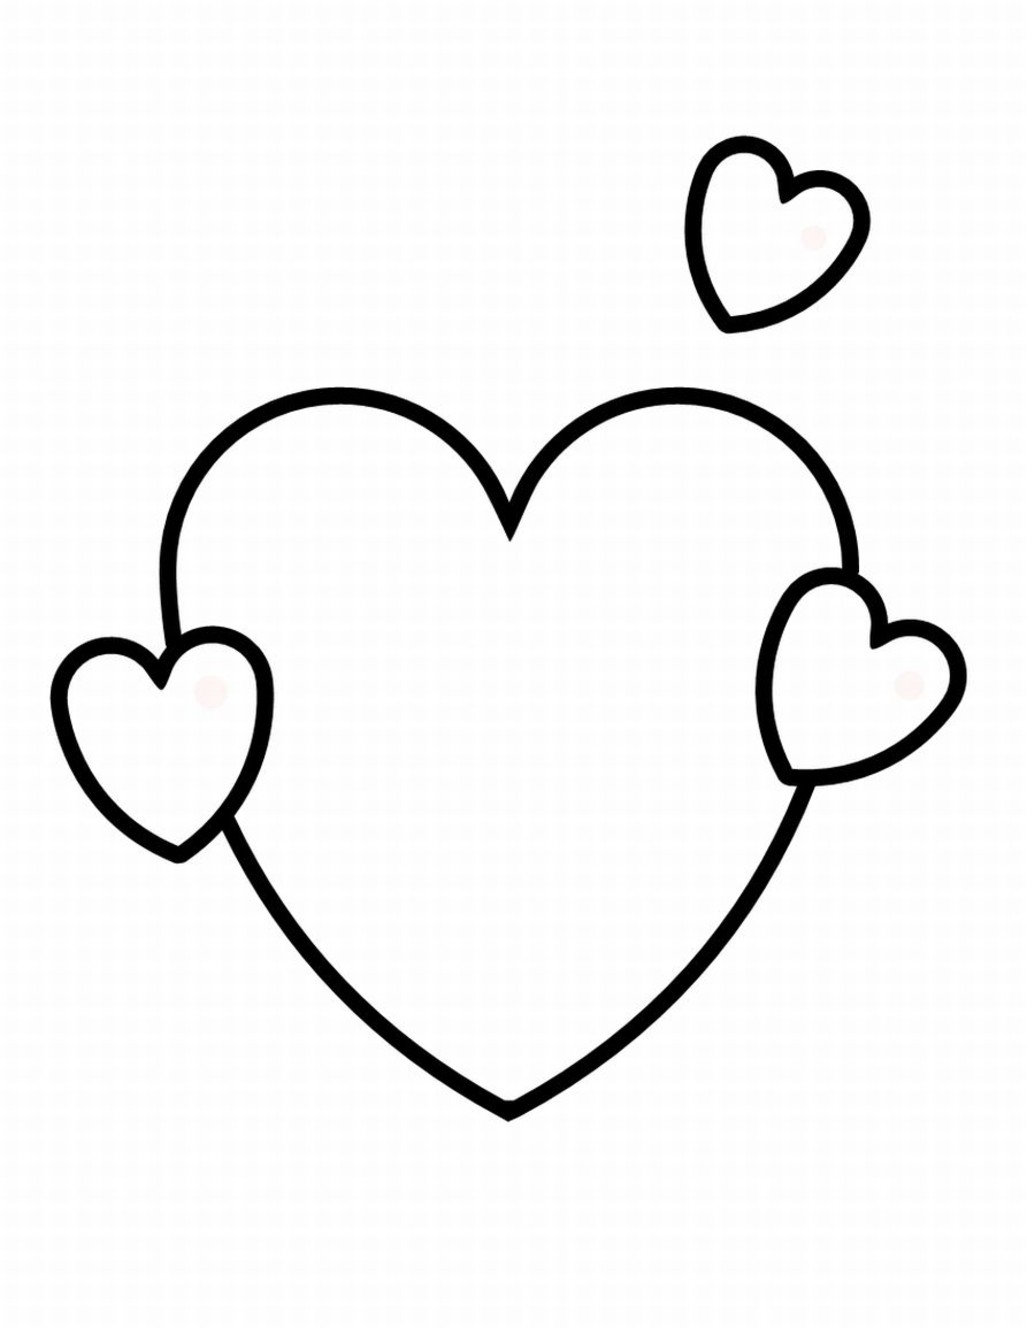 Free Coloring Pages Hearts Free Hearts With Wings Coloring Pages Download Free Clip Art Free